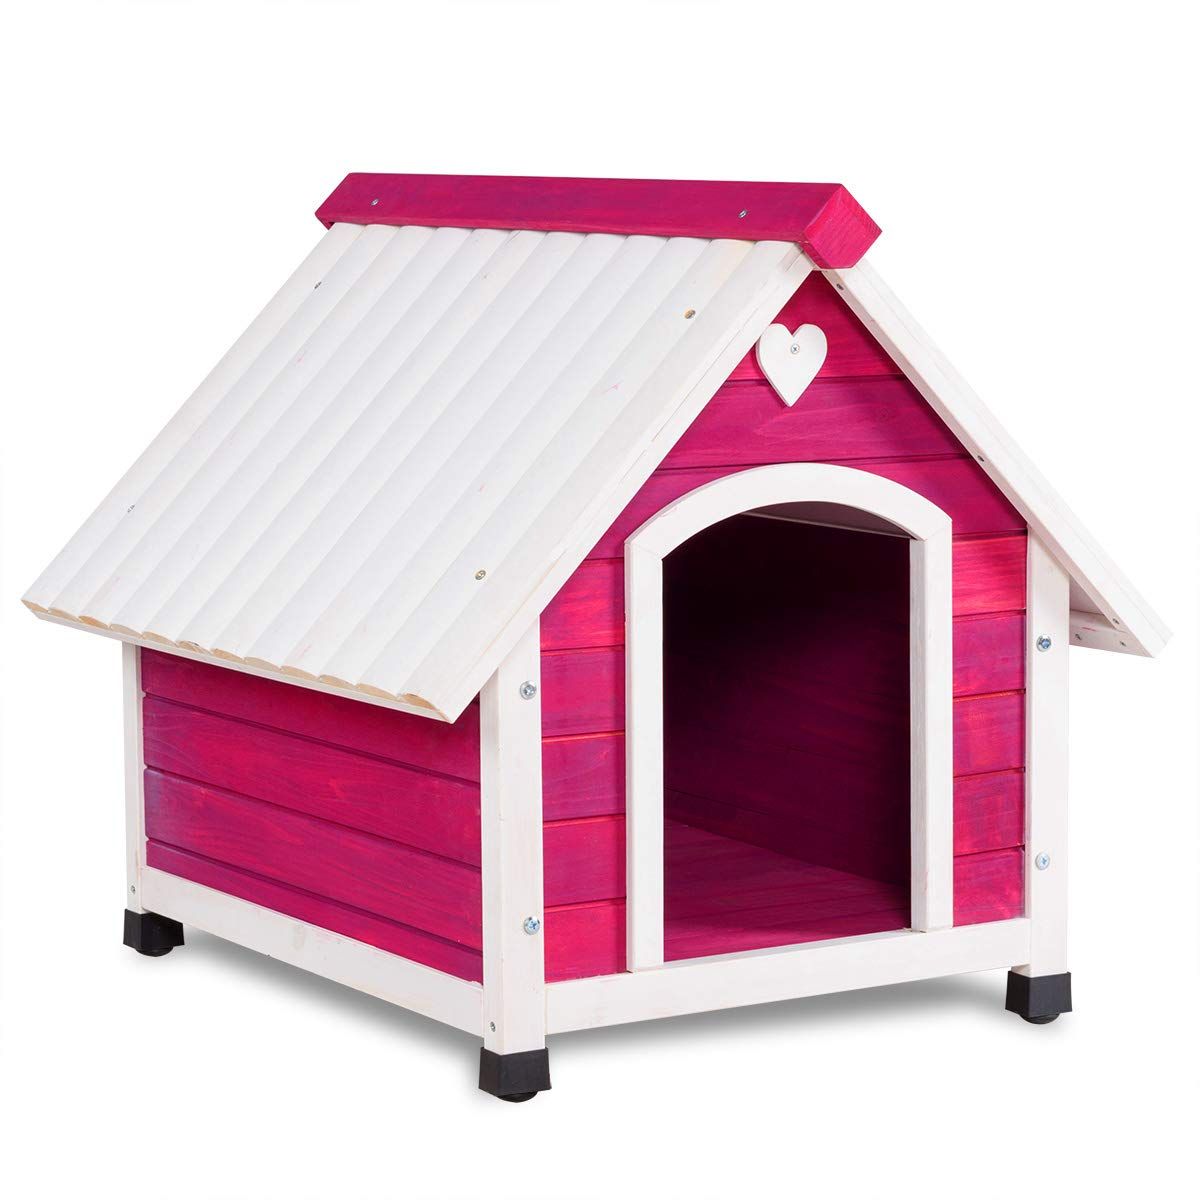 Tangkula Wooden Dog House Outdoor Indoor Lovely Pet Shelter Wood Kennel Weather Resistant Pet House Home with White Roof 2 Size (M/L) (L-Dog House)